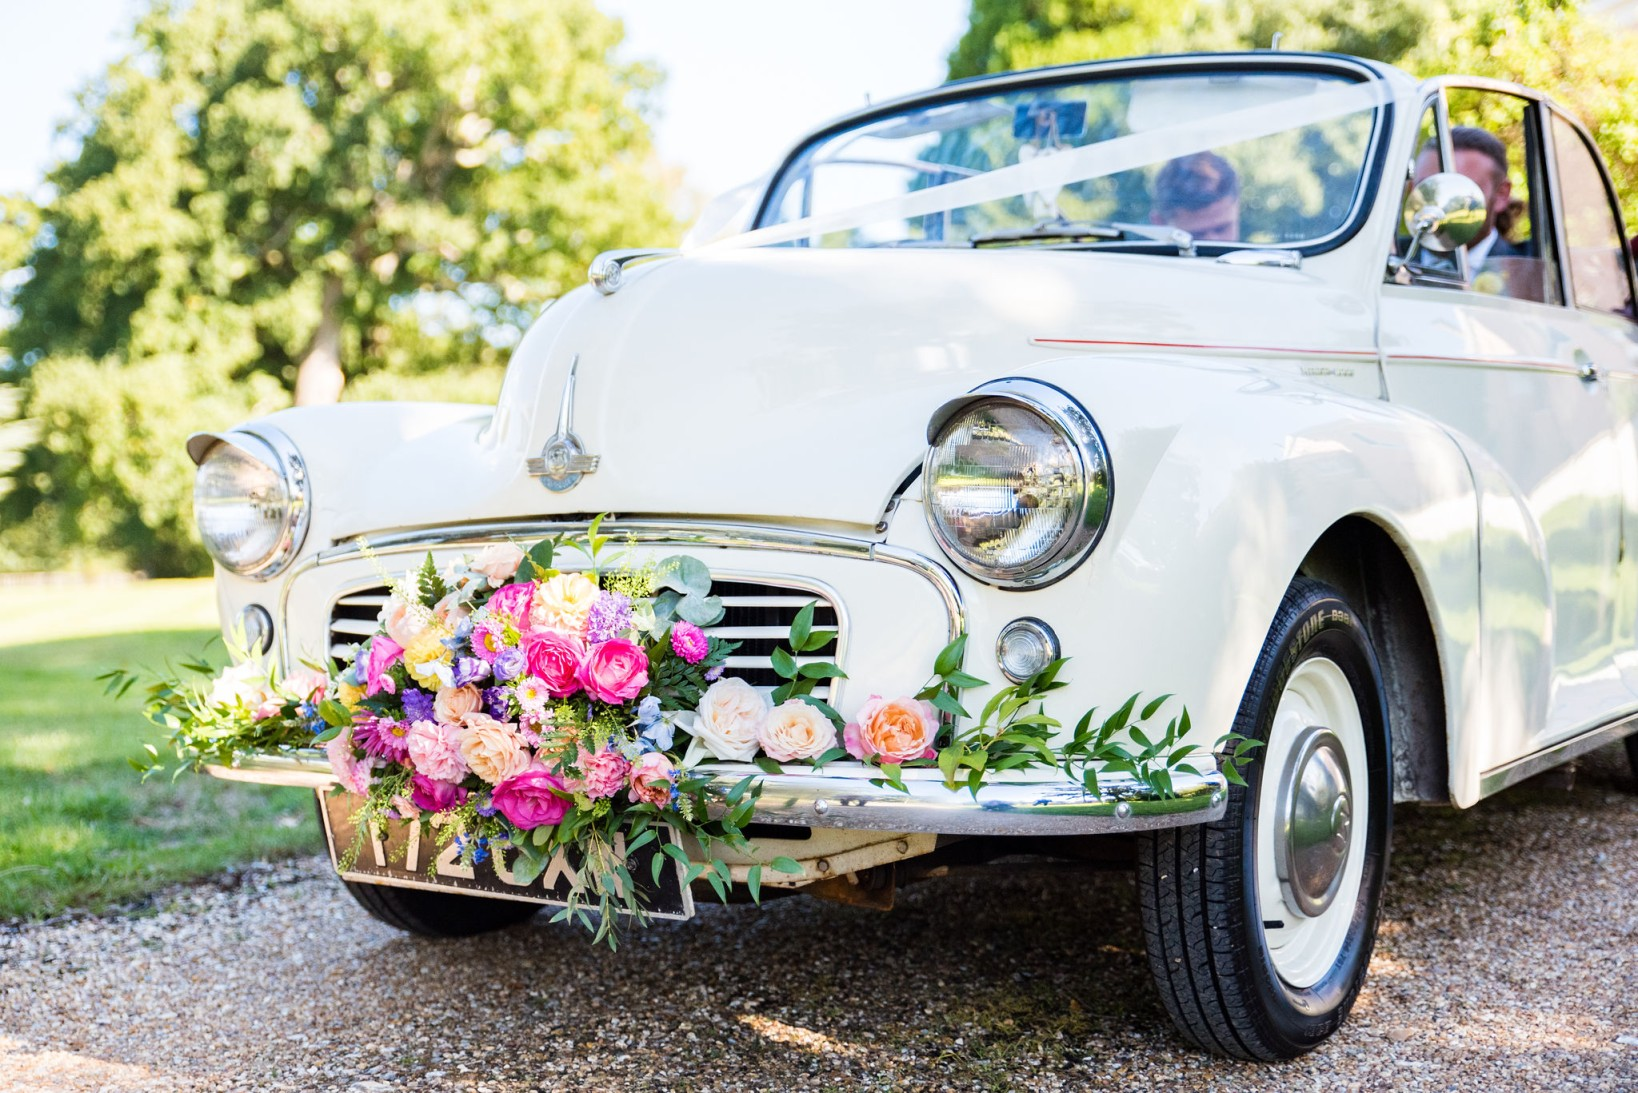 Chantelle Goble Photography - Rainbow wedding - wedding car - engagement photoshoot advice - alternative wedding 2